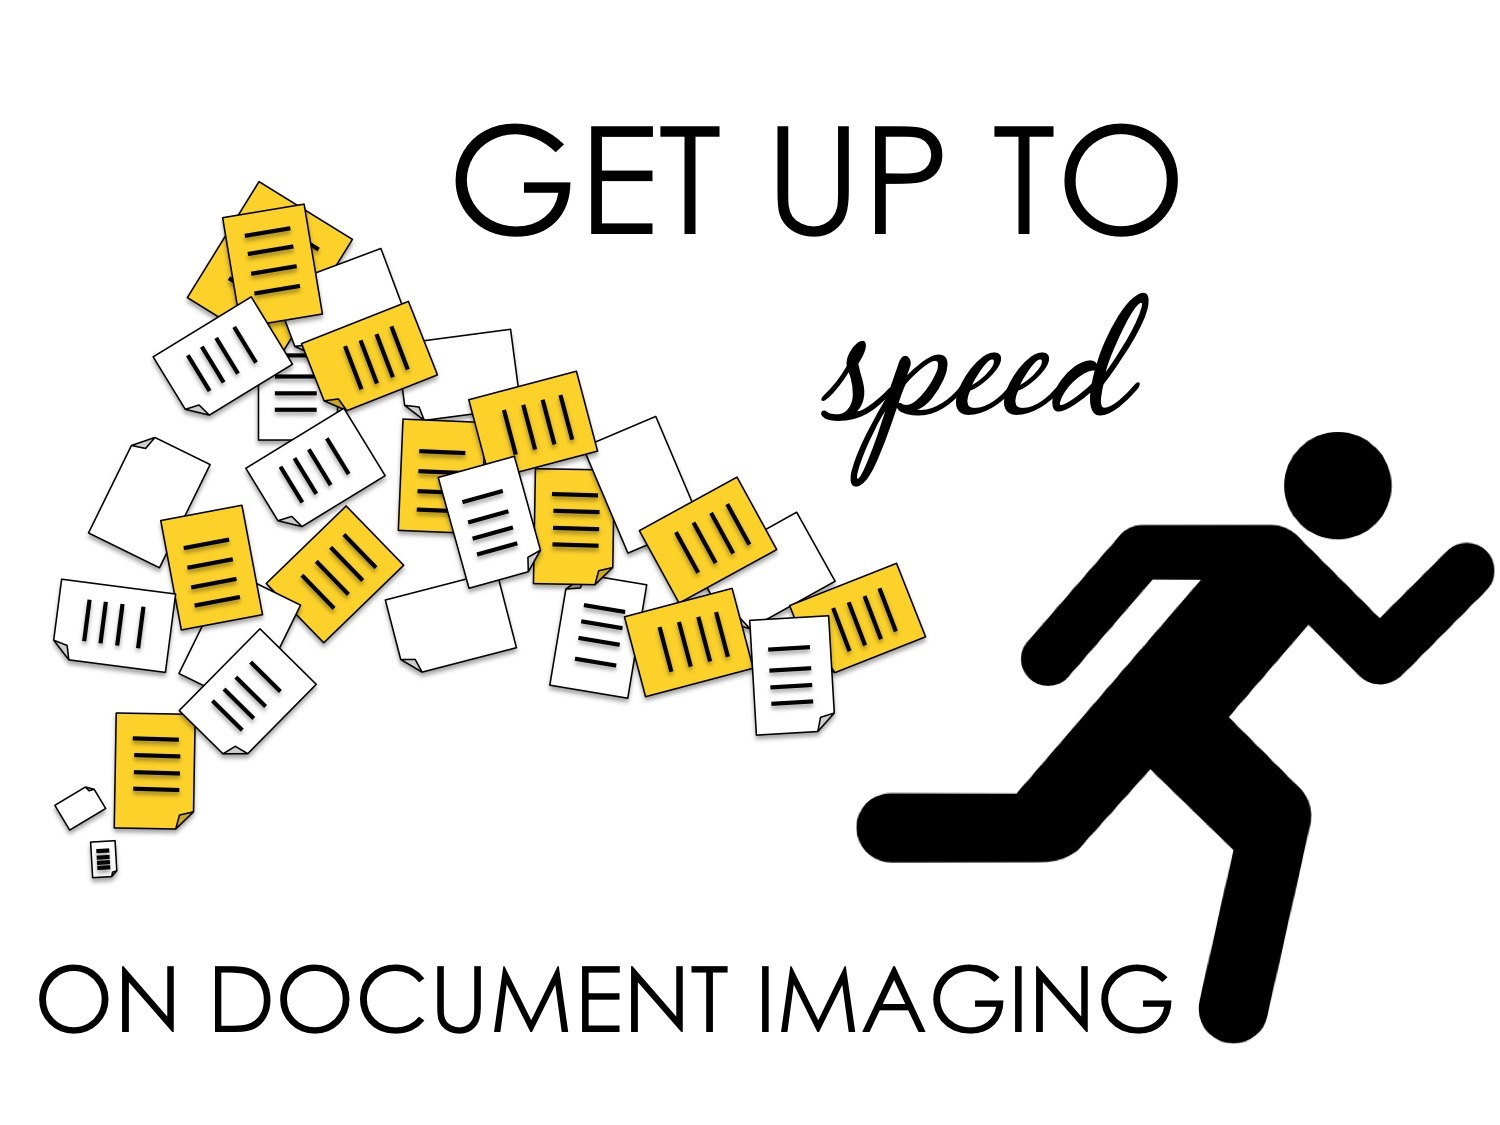 3 Ways to Get Up to Speed on Document Imaging Services for Your Business - Featured Image